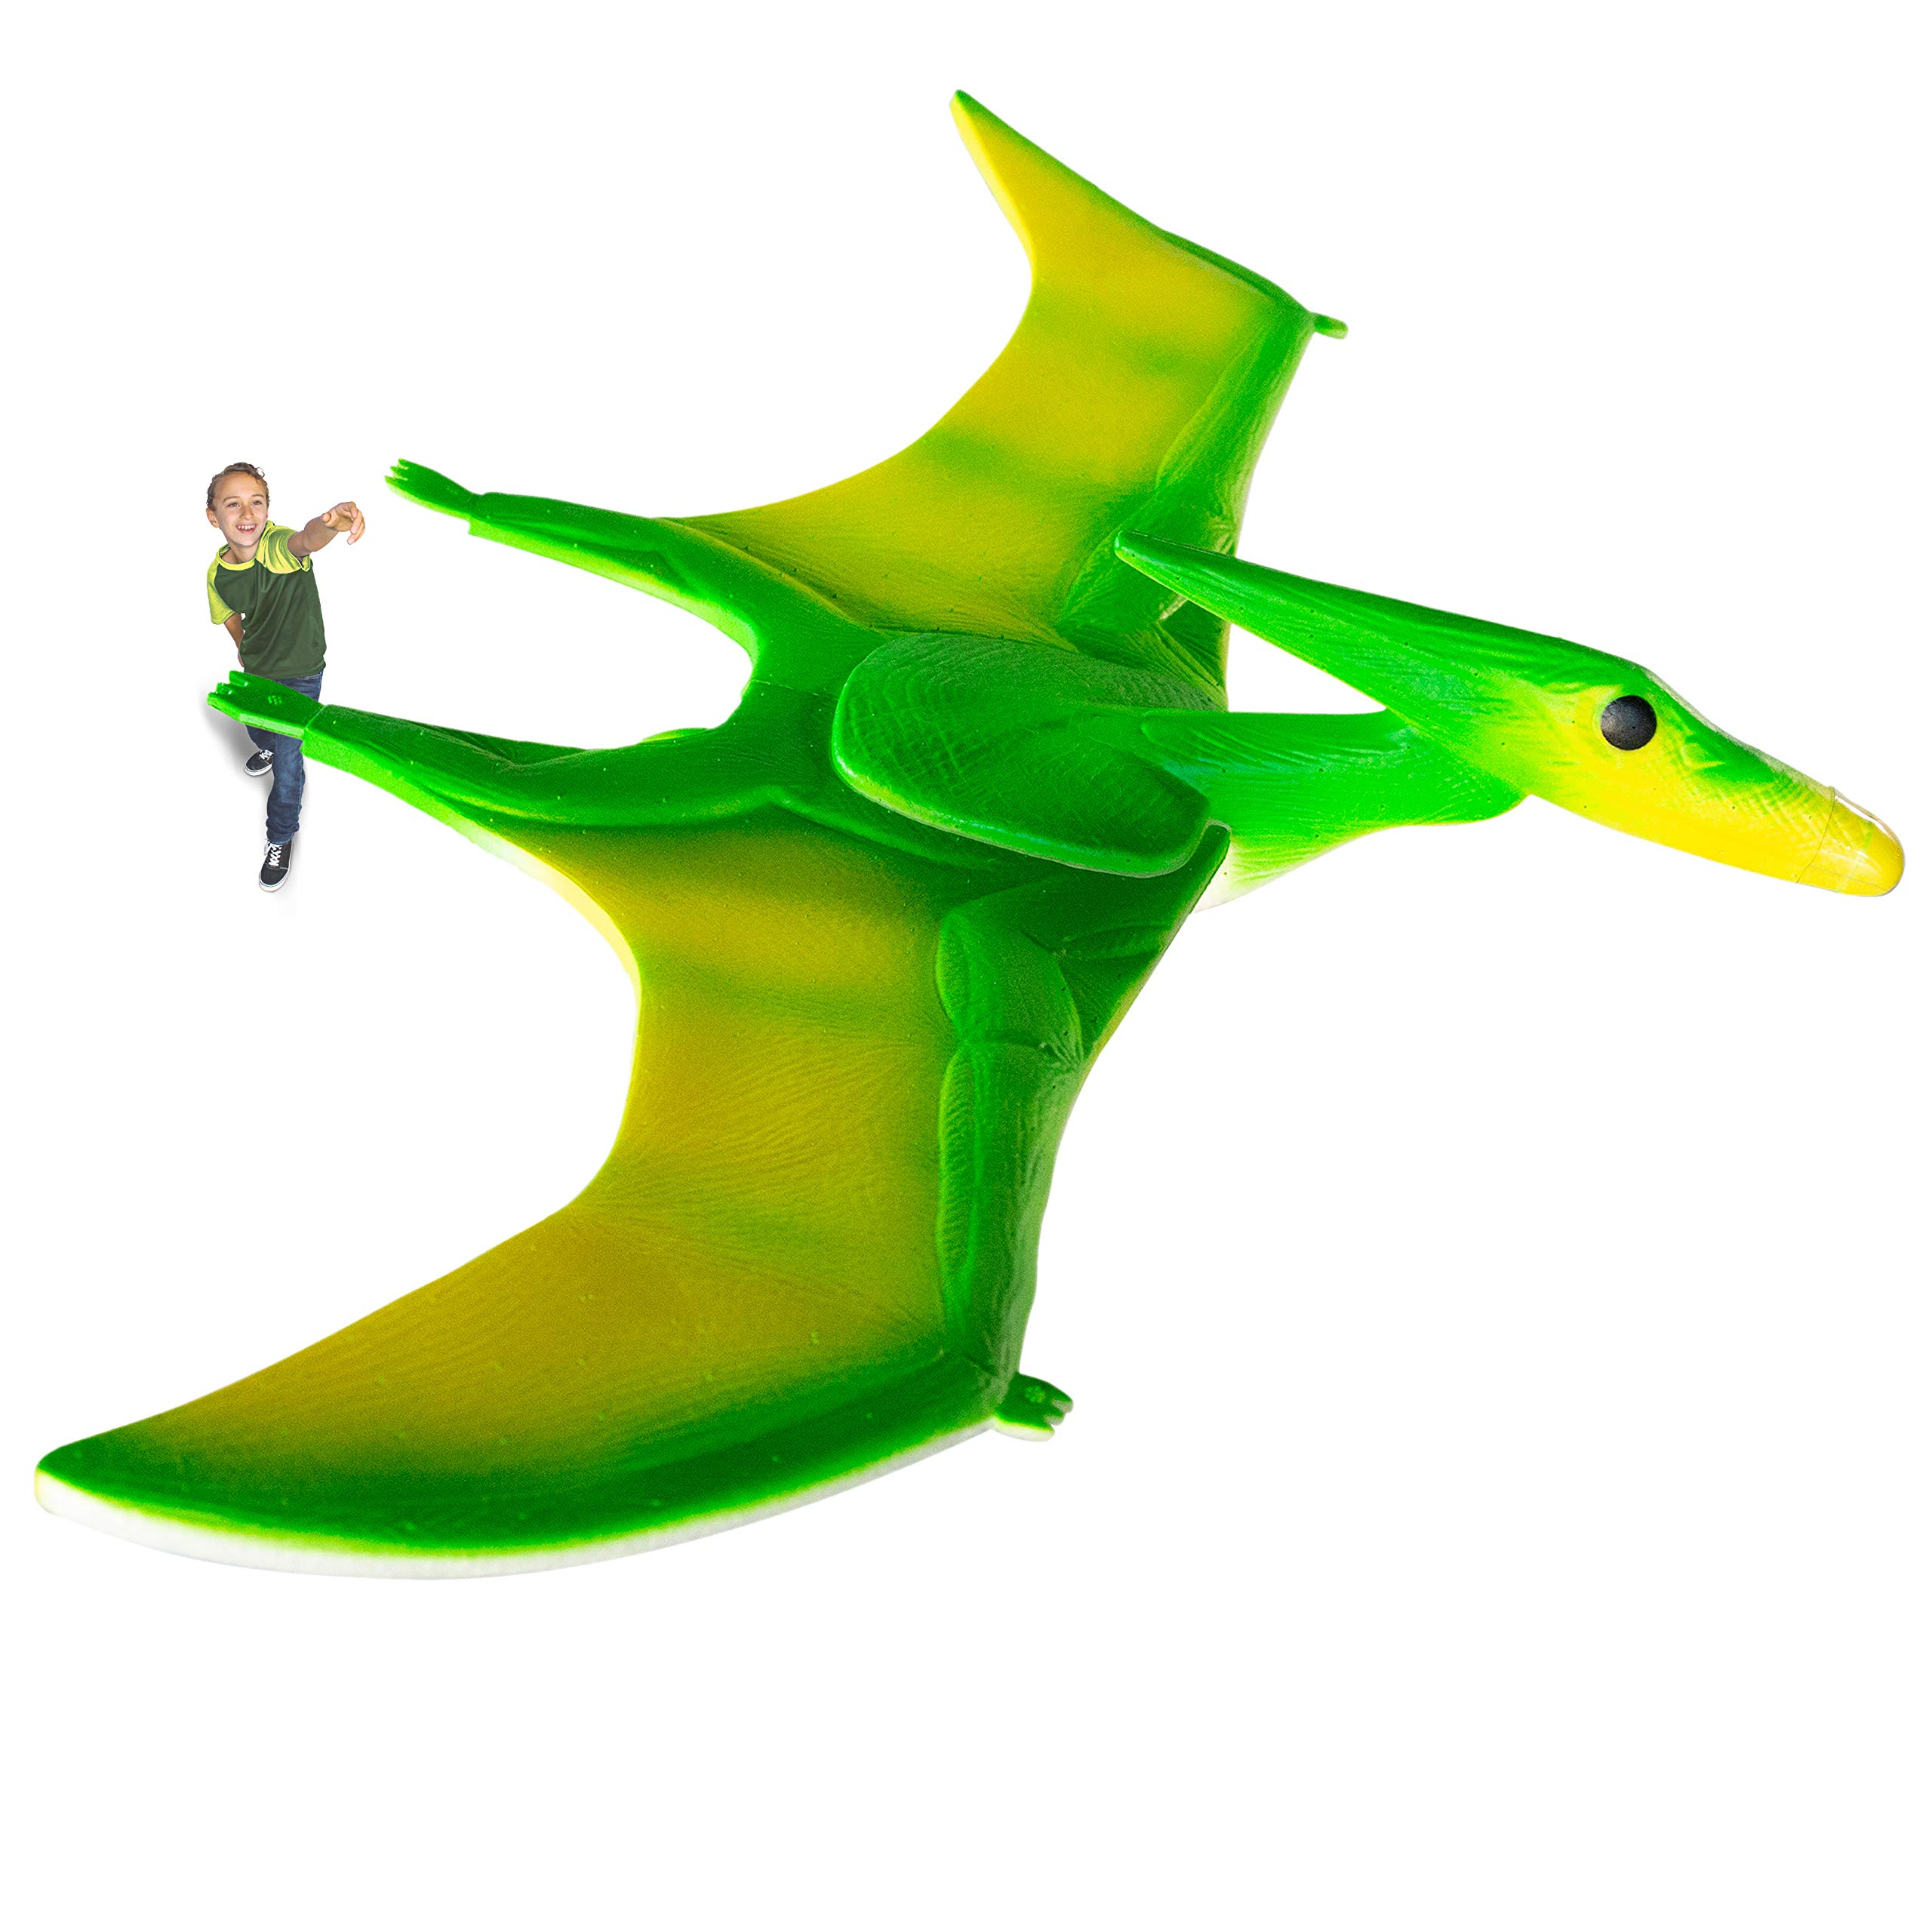 Geospace Geoglide Terror Pterodactyl Glider Kit with 33'' Wingspan, Green by Geospace (Image #1)